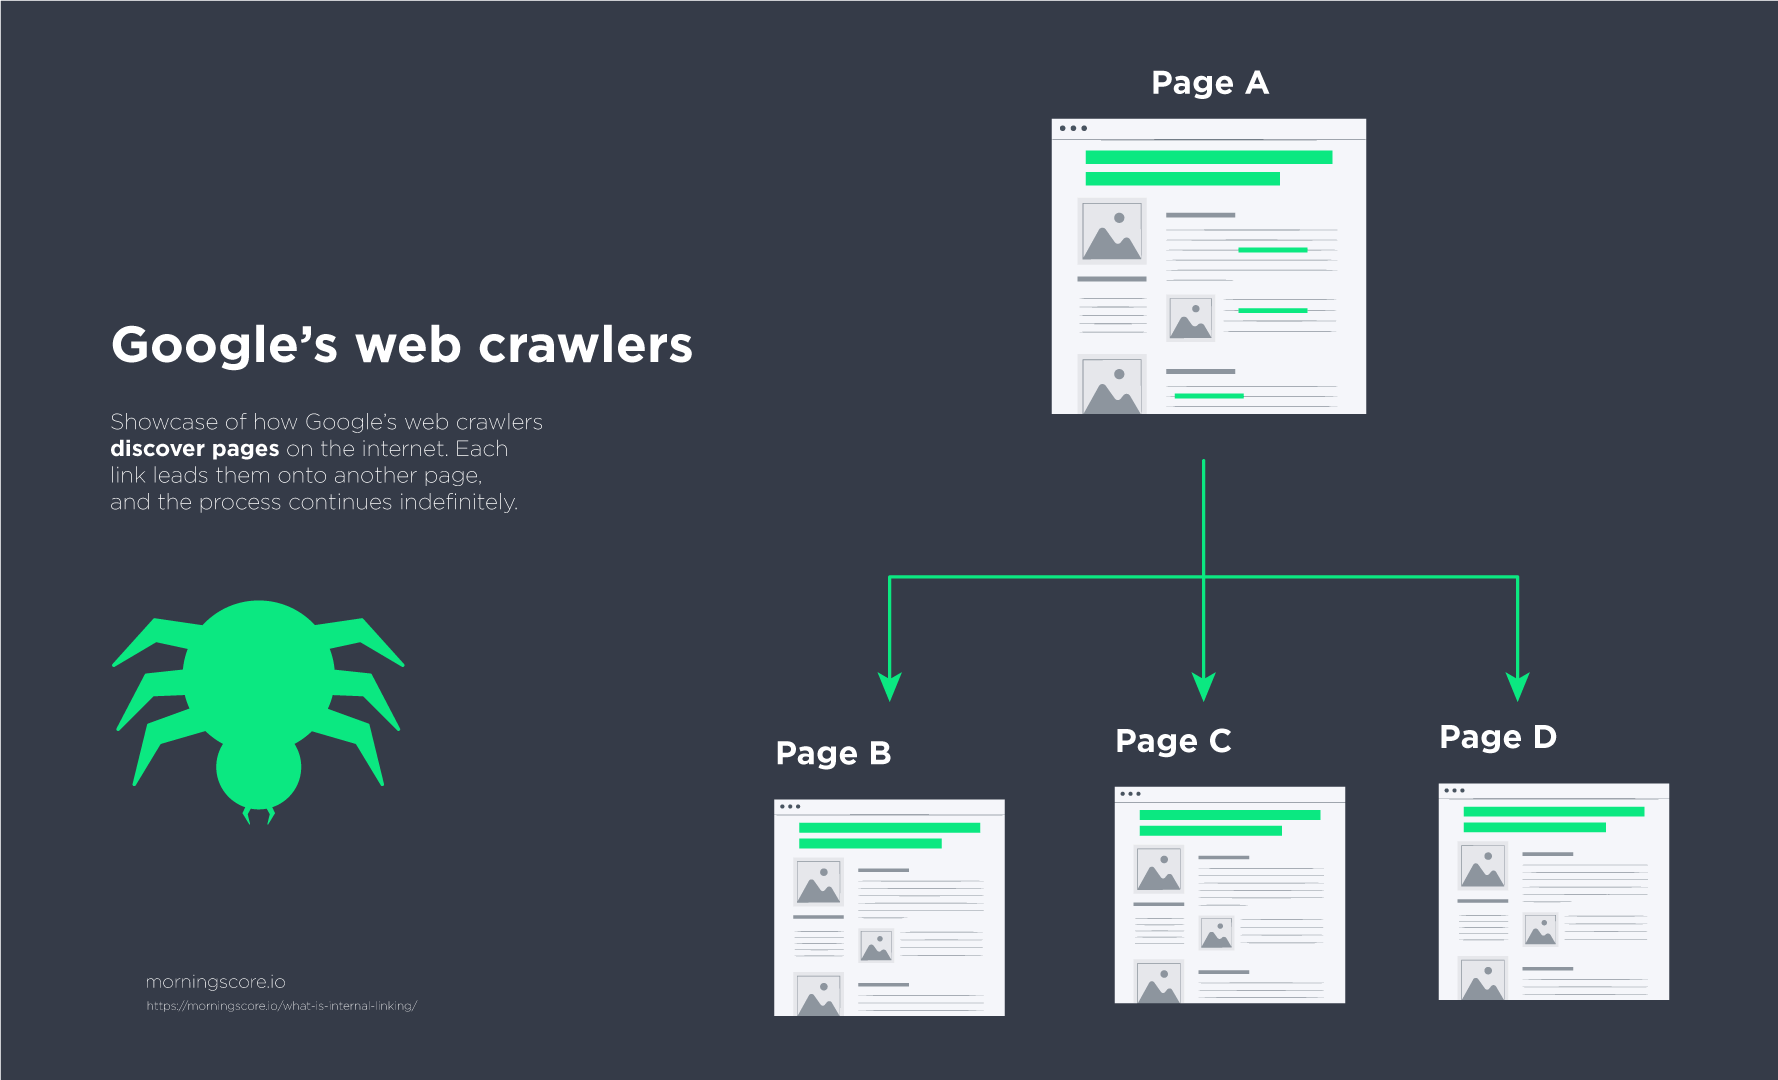 googles crawlers-discovering new pages through internal linking